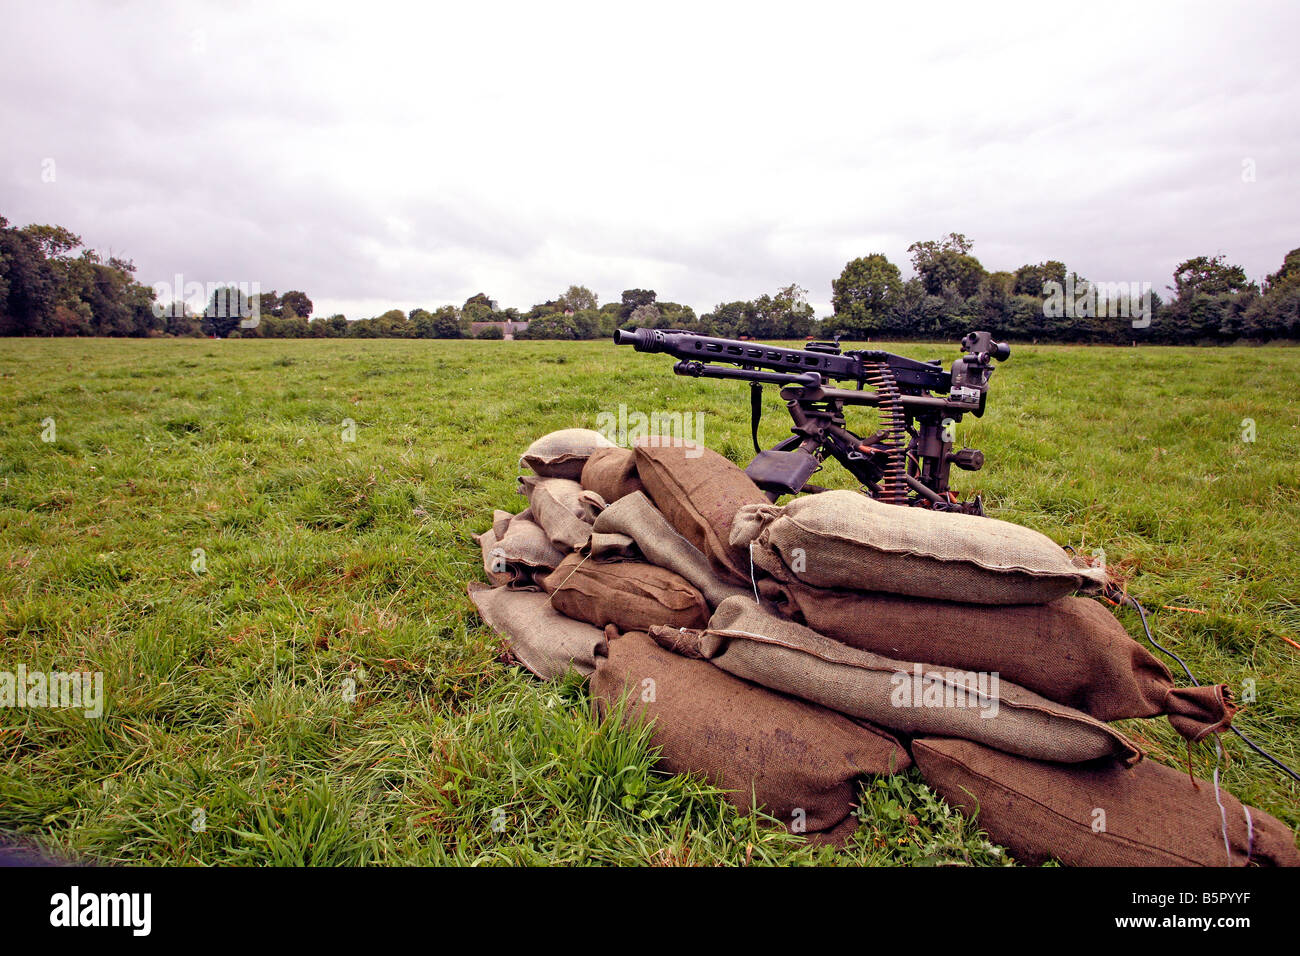 German machine gun on the site of the famous 101st Airborne (Band of Brothers) battle on the eve of D Day at Brecourt - Stock Image